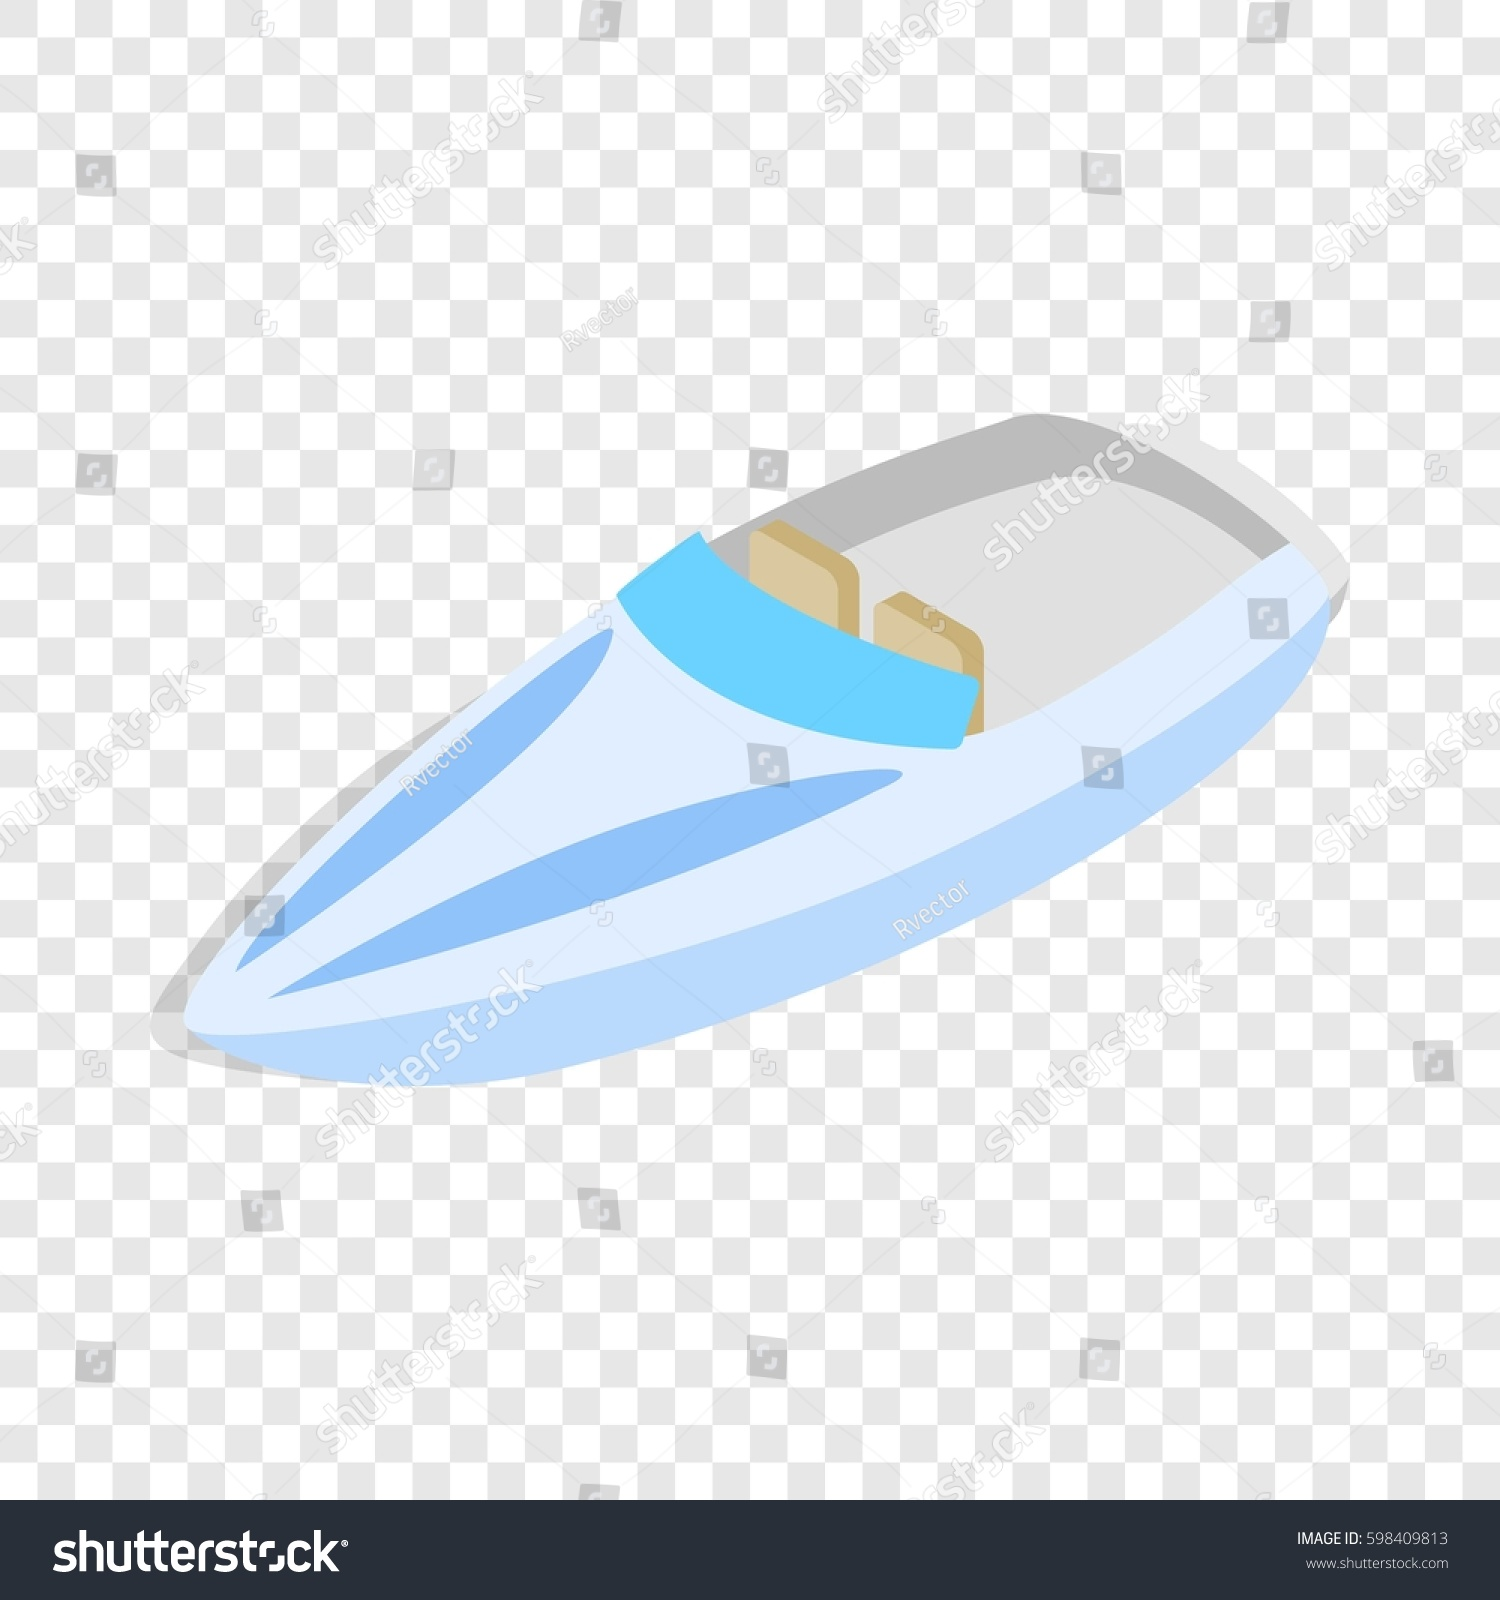 blue speed boat isometric icon 3d on a transparent background illustration